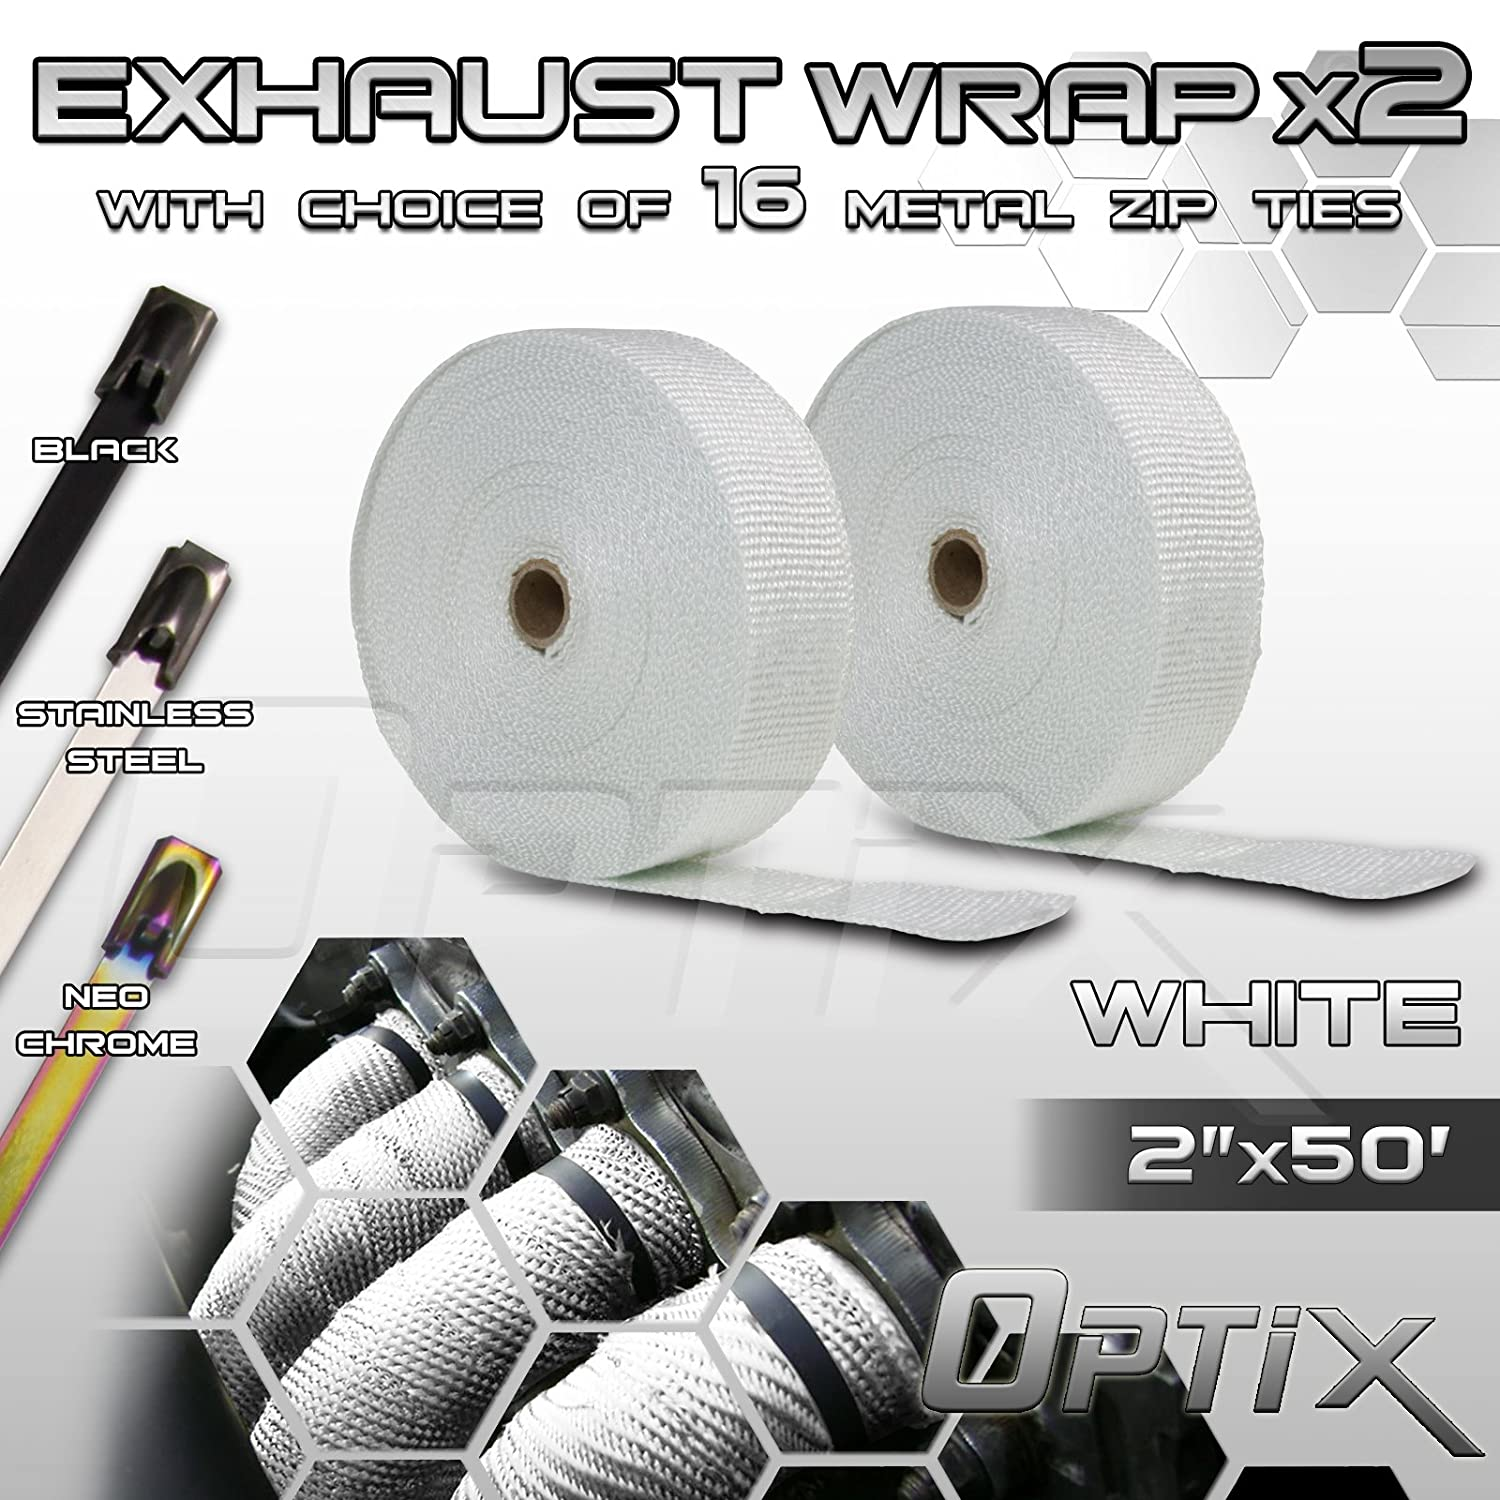 Optix 2' (W) x 50' (L) Thermal Header Exhaust Wrap Kit - Heat Shield Tape with Stainless Steel Zip Ties - 2 Rolls - Black Third Gear Performance